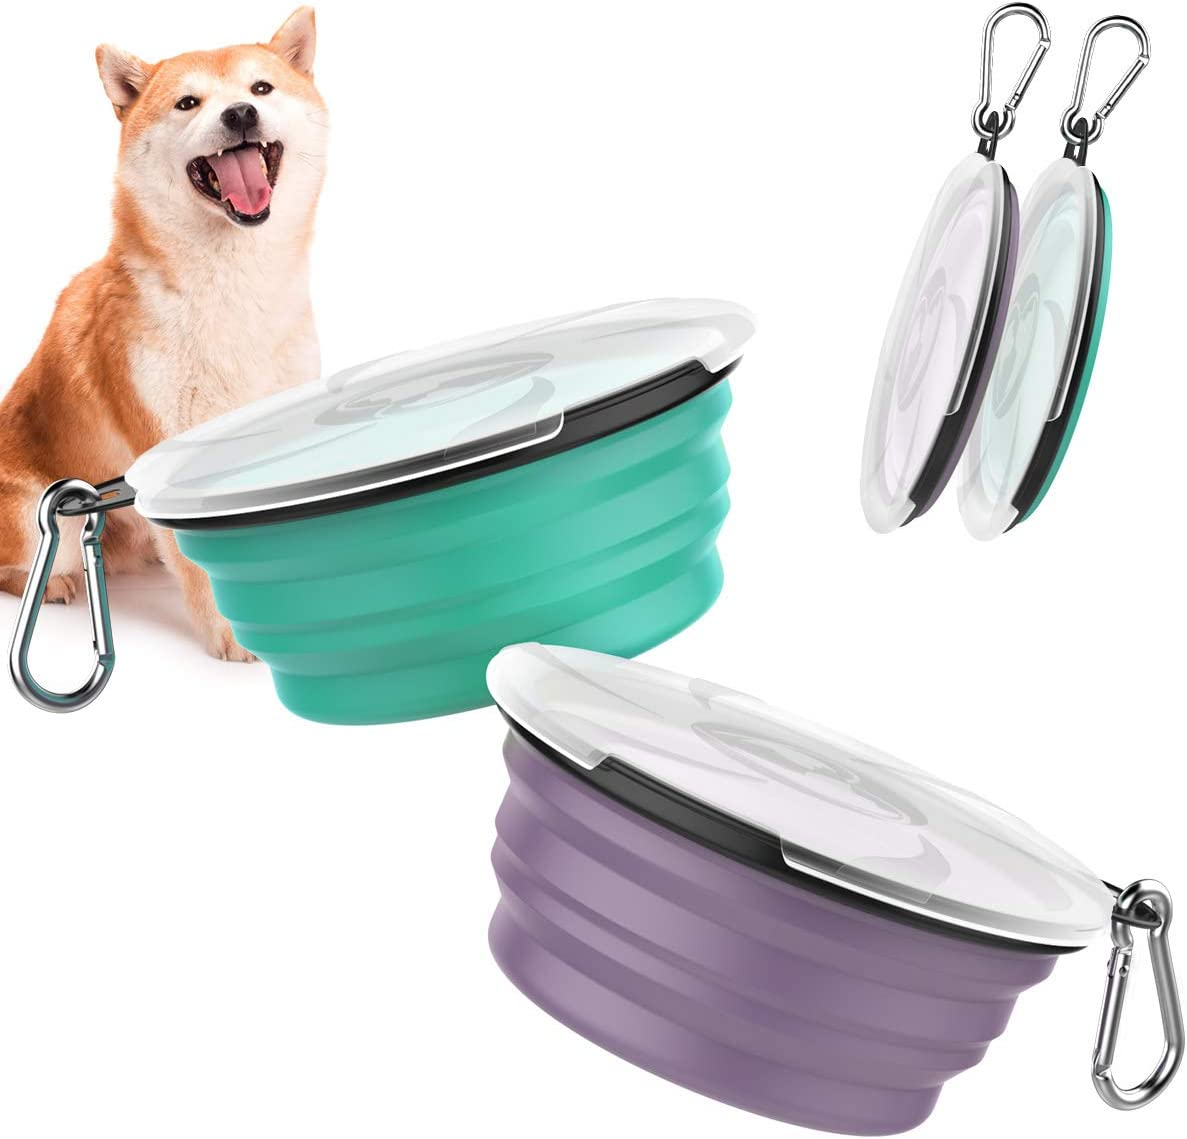 Pawaboo Collapsible Dog Bowls 2 Pack, Silicone Feeding Watering Bowls with Lids & Carabiners for Dogs Cats, Portable Collapsable Water Feeder Food Bowl for Walking Traveling Home Use